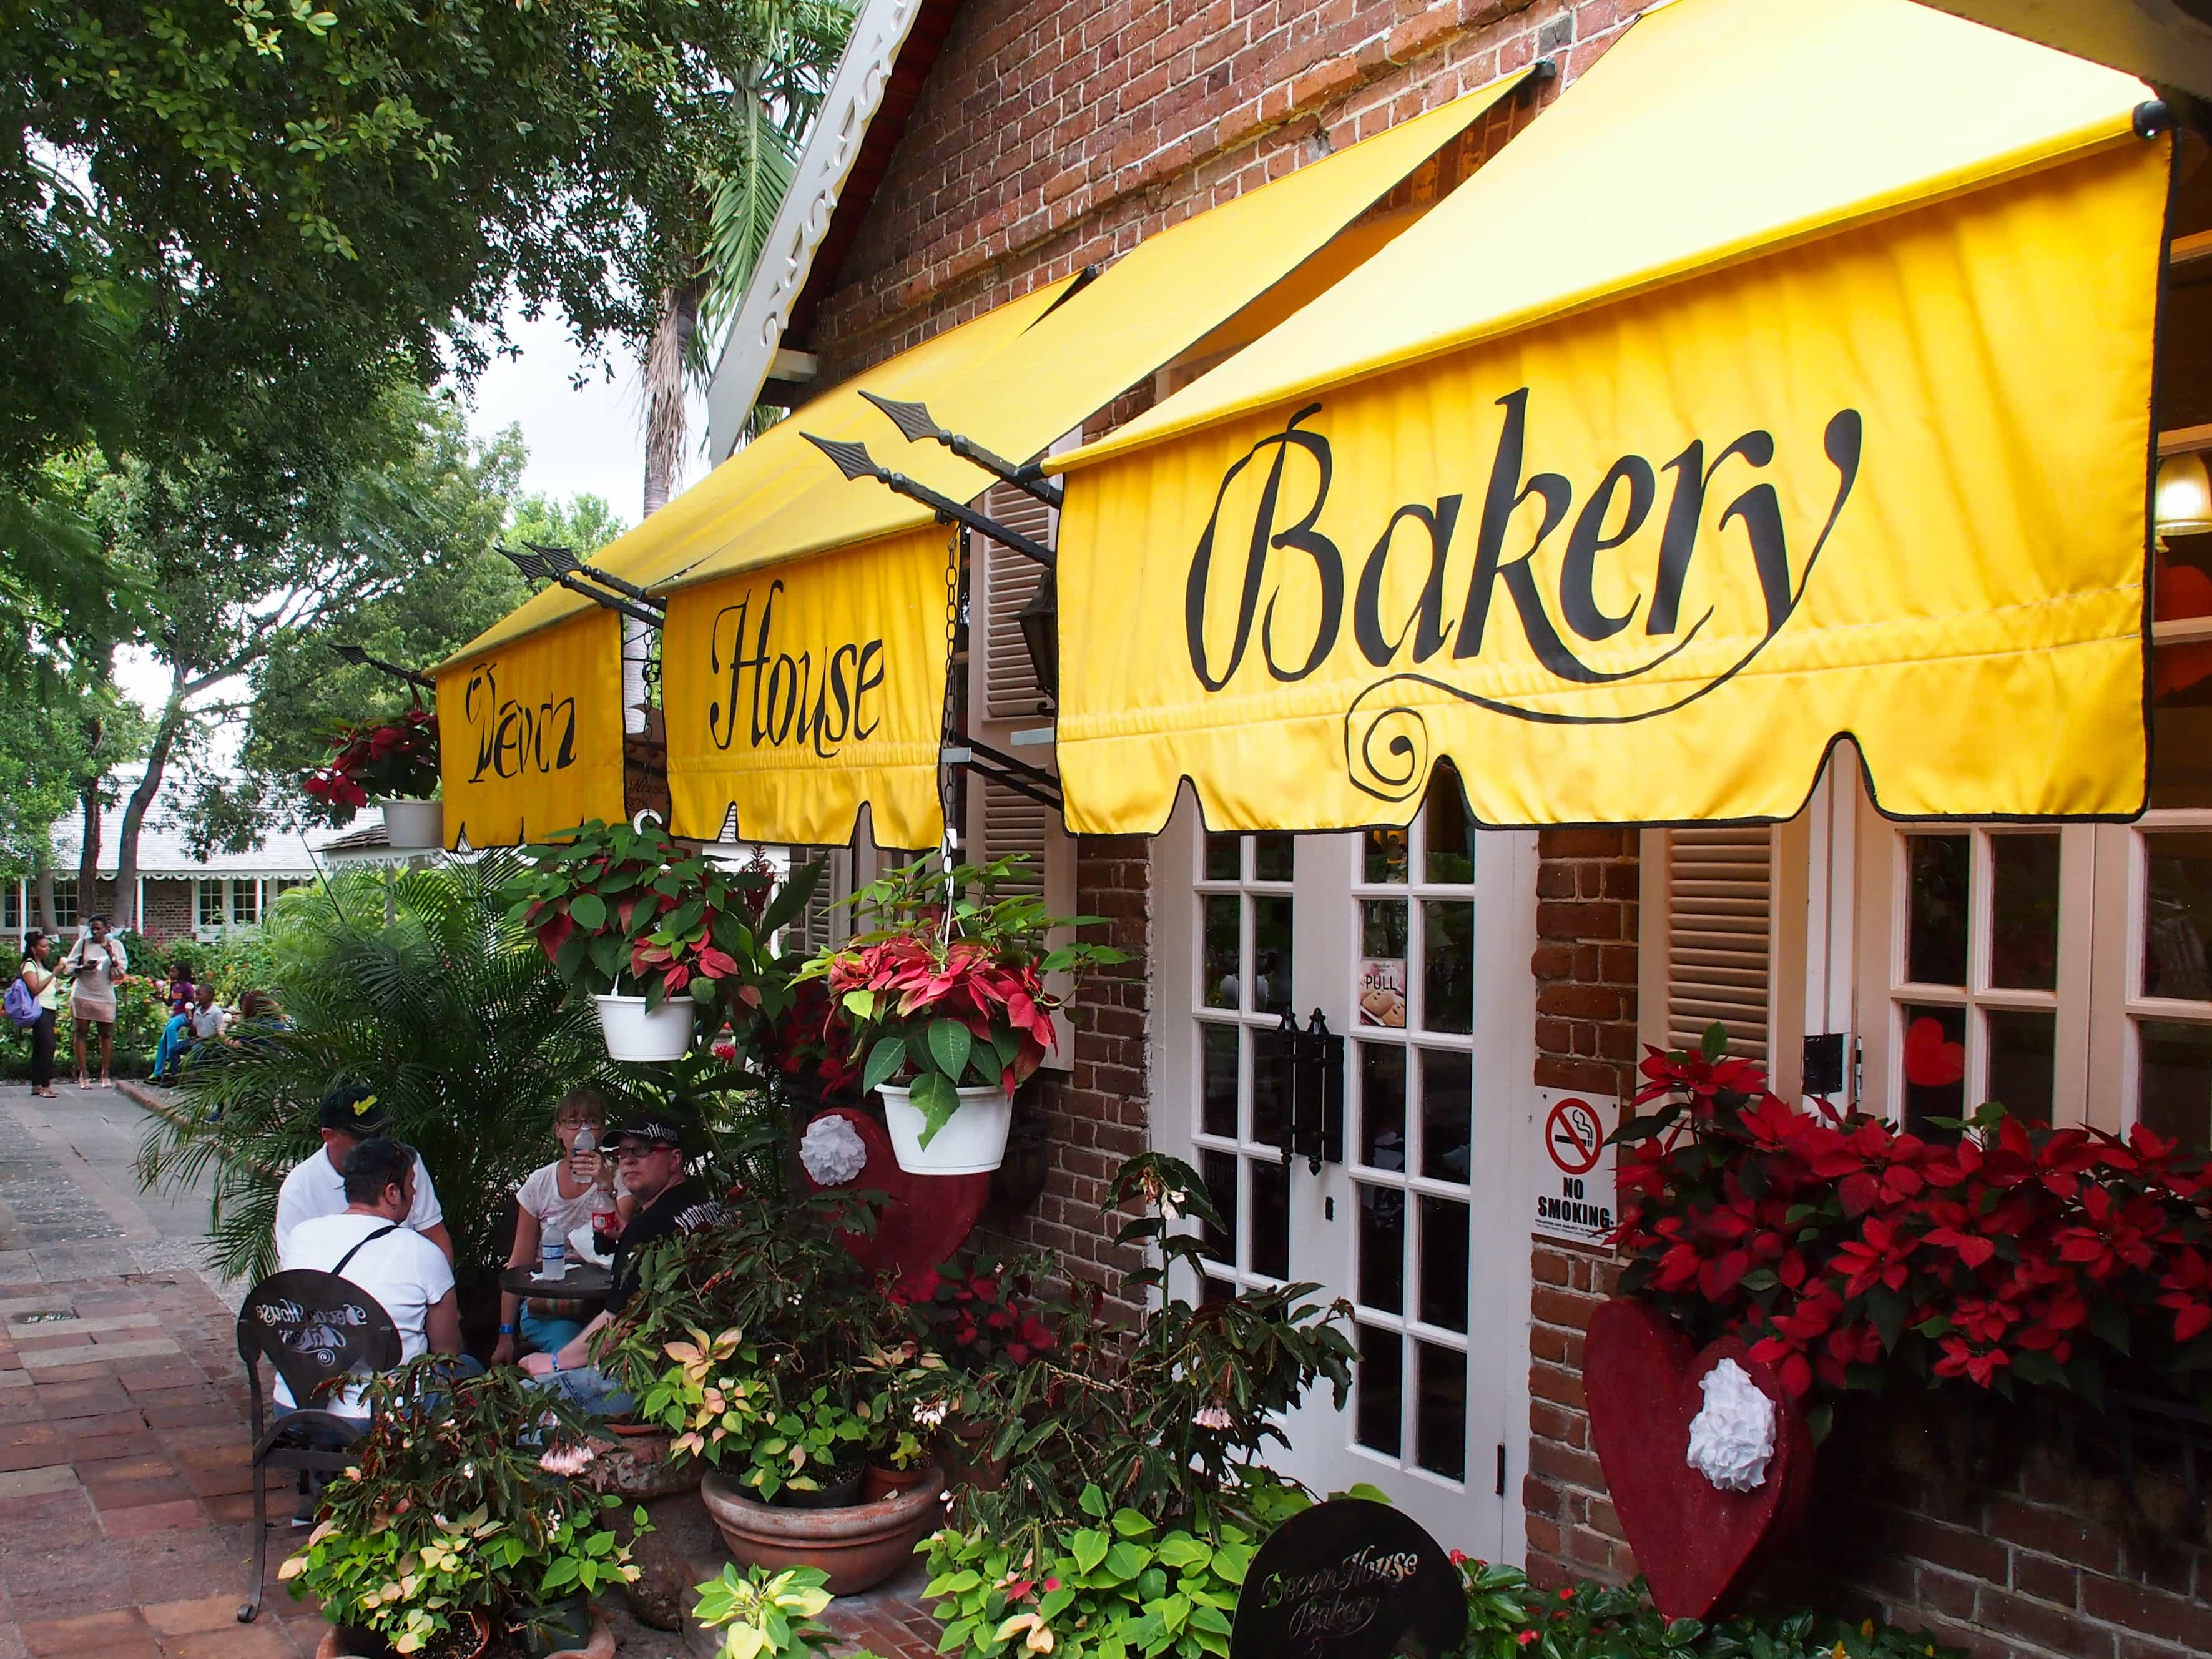 Devon House Bakery in Kingston, Jamaica | SBPR